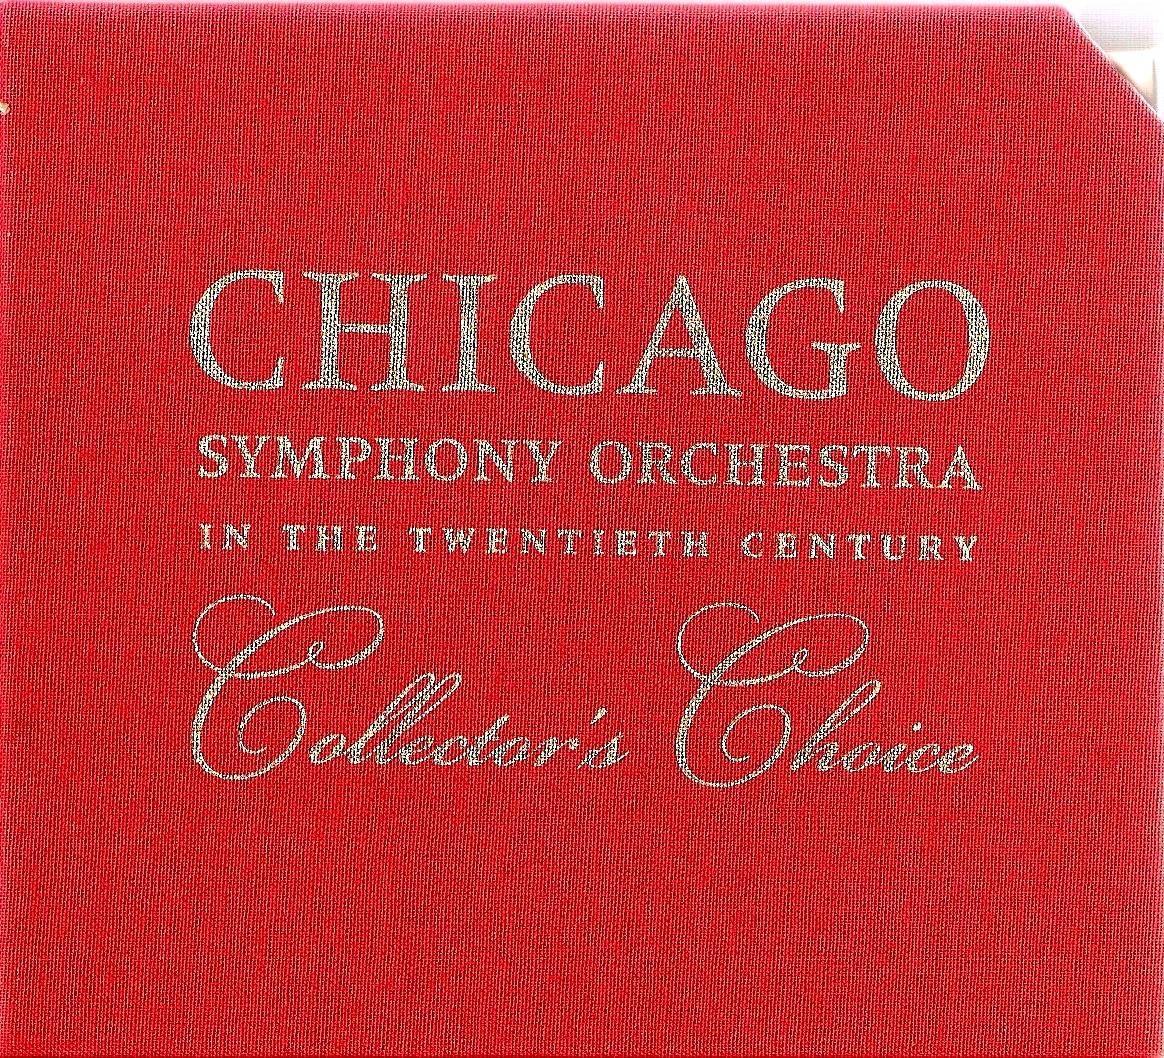 Chicago Symphony Orchestra - From The Archives: The CSO in the 20th Century: Collector's Choice, 10-CD set (2000) (page 1 of 5)